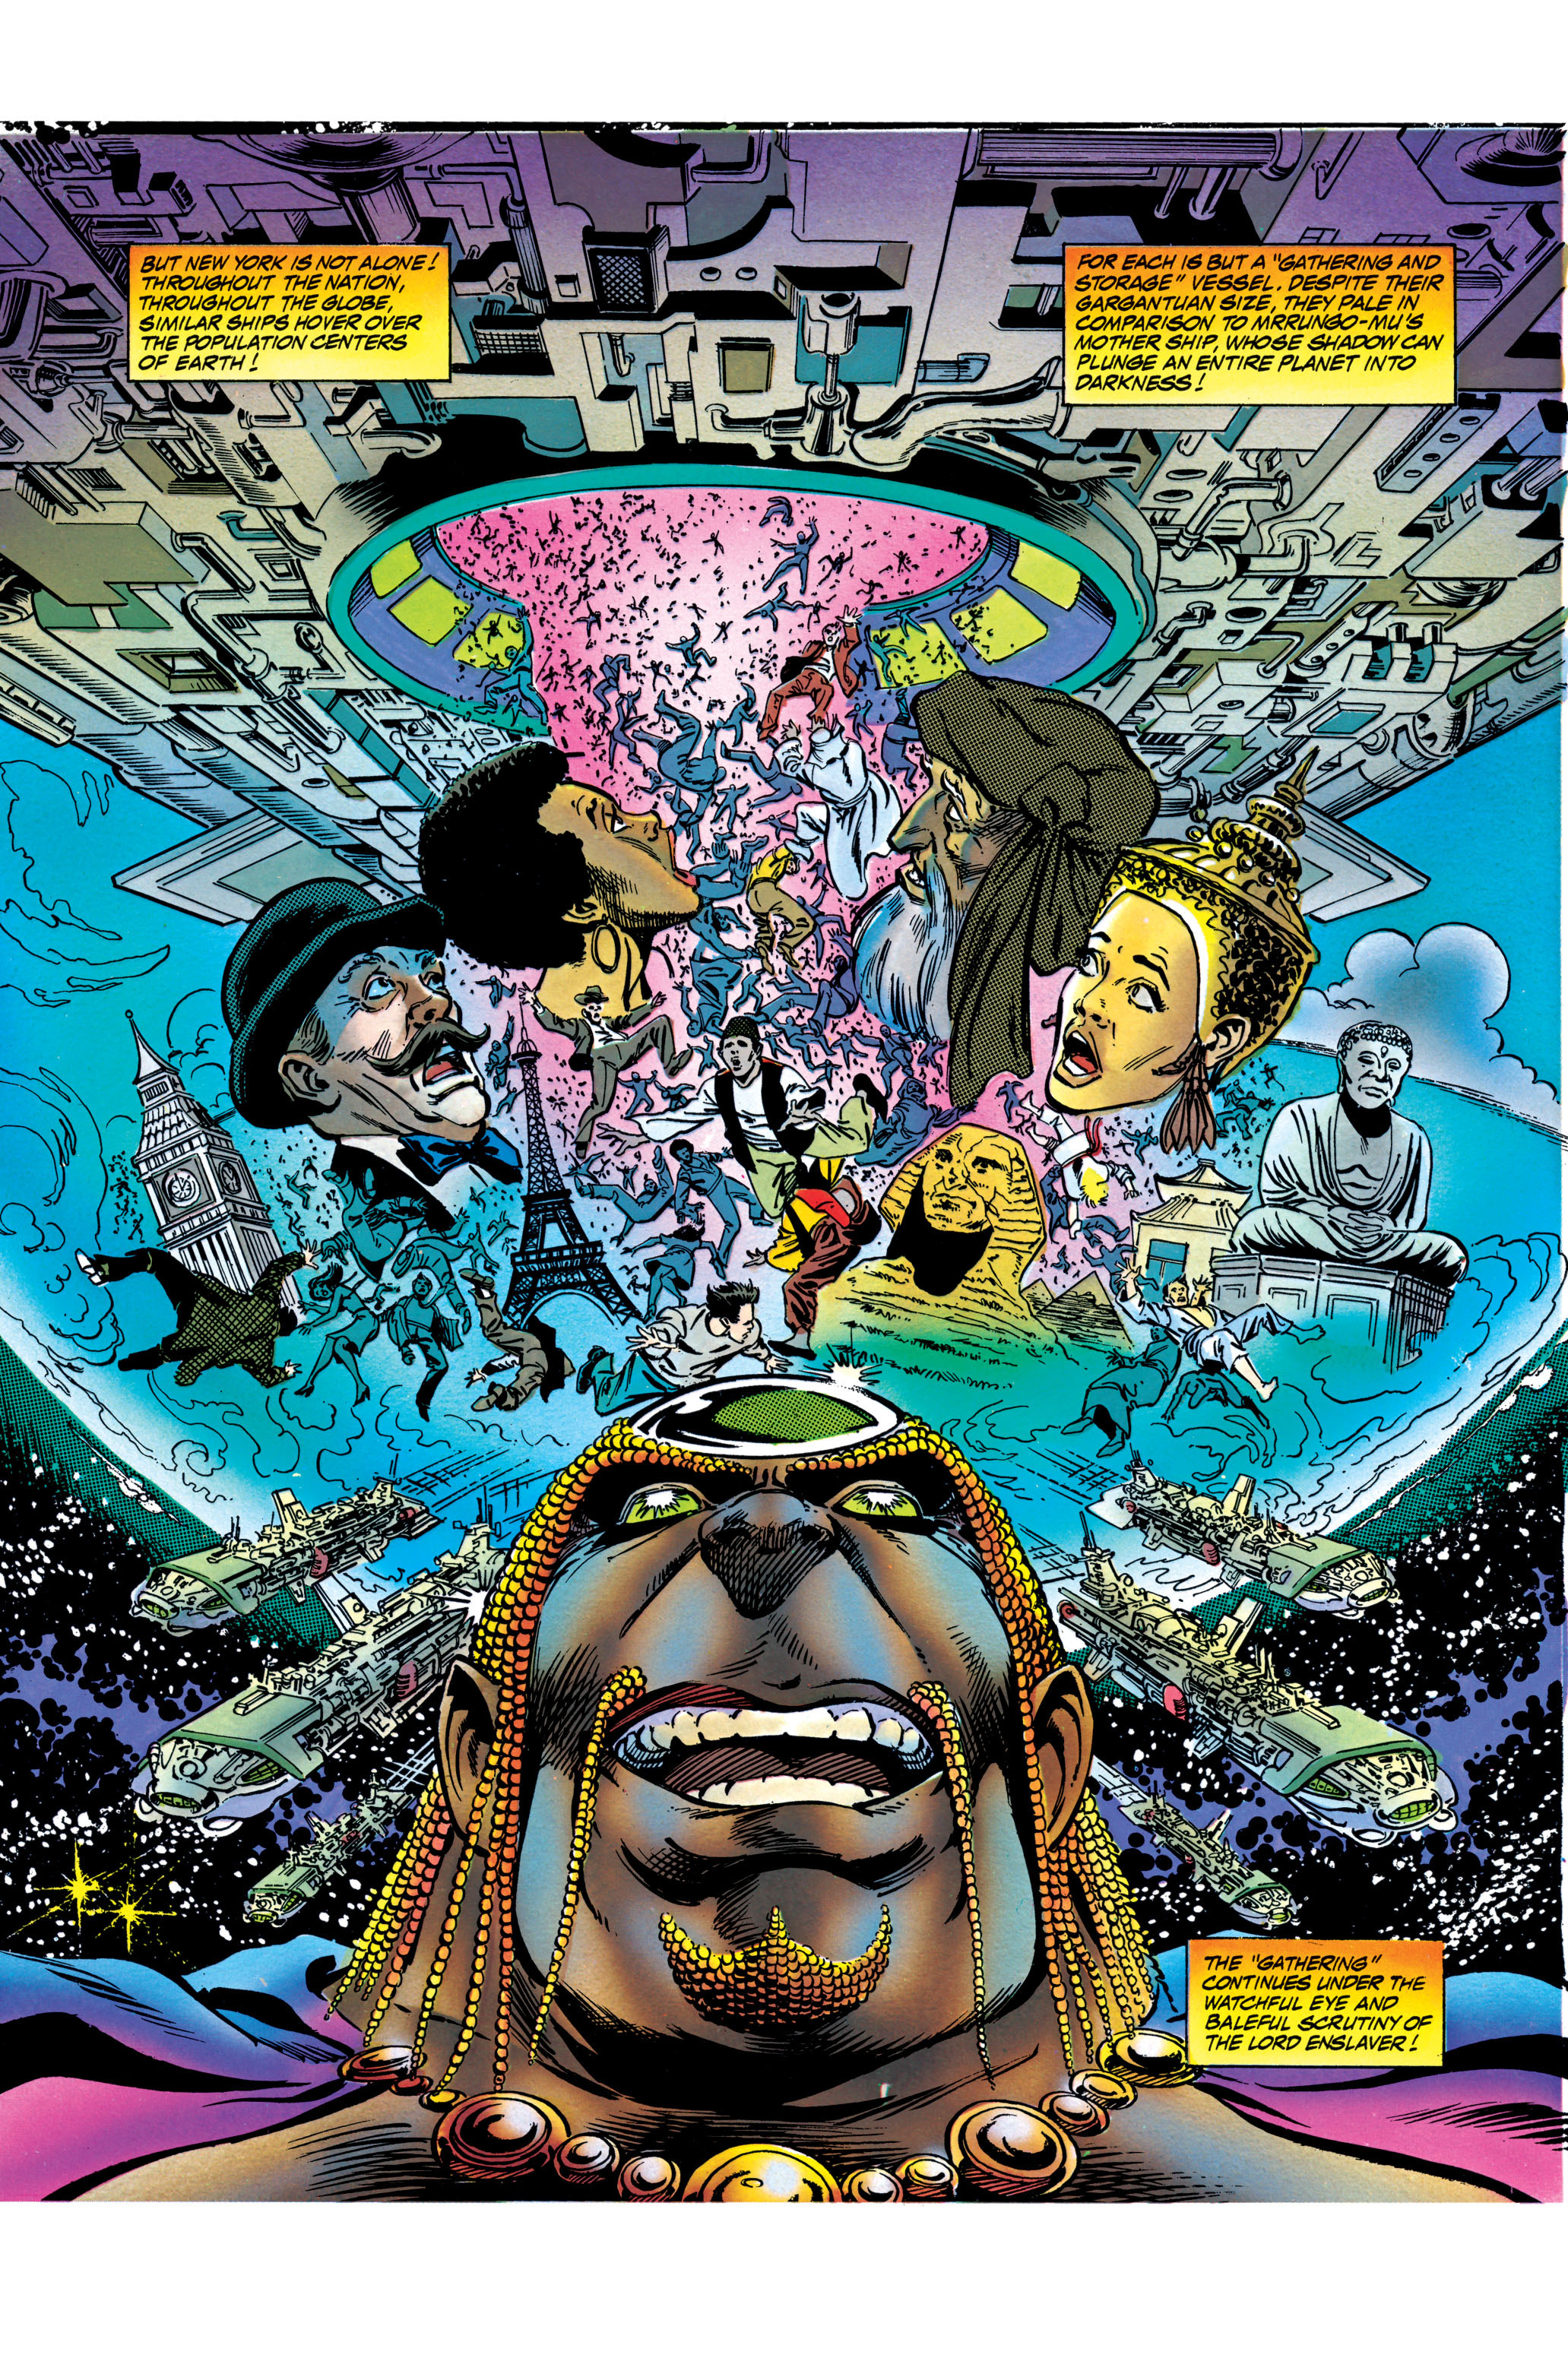 Read online Silver Surfer: Parable comic -  Issue # TPB - 103